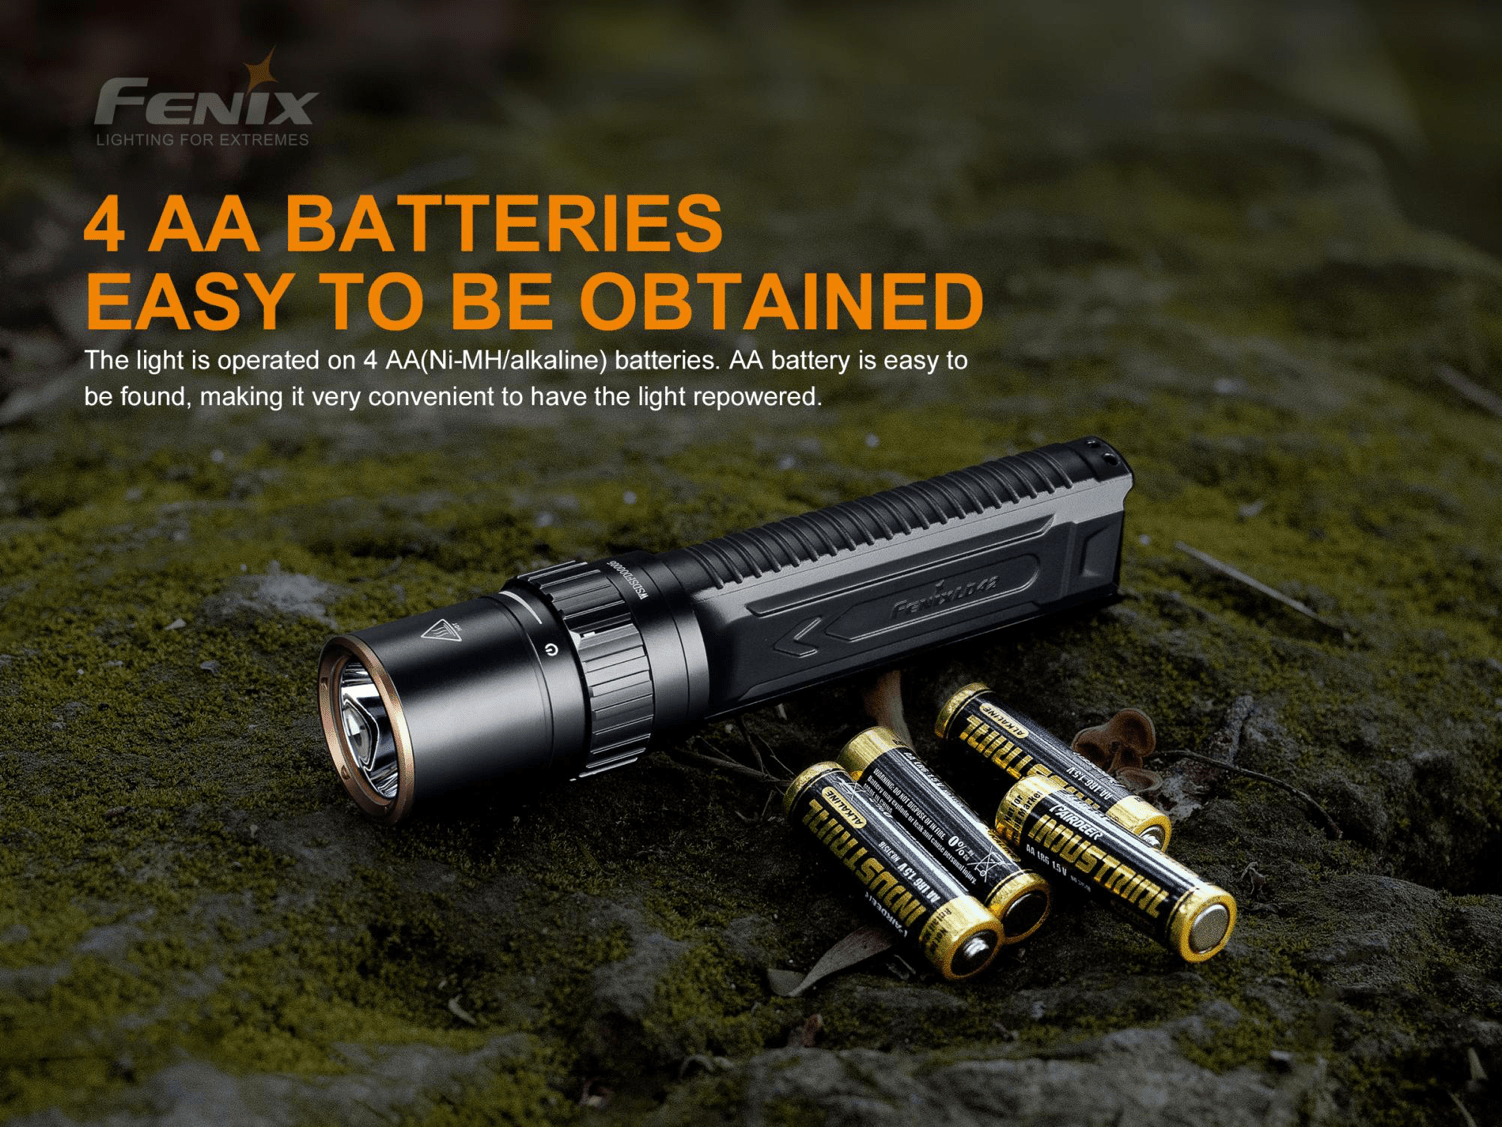 Fenix LD42 LED Torch, 1000 Lumens Powerful Compact Flat Body grip Torch light, Everyday Carry work Flashlight for Inspection Searchlight Outdoors Camping Hiking Light